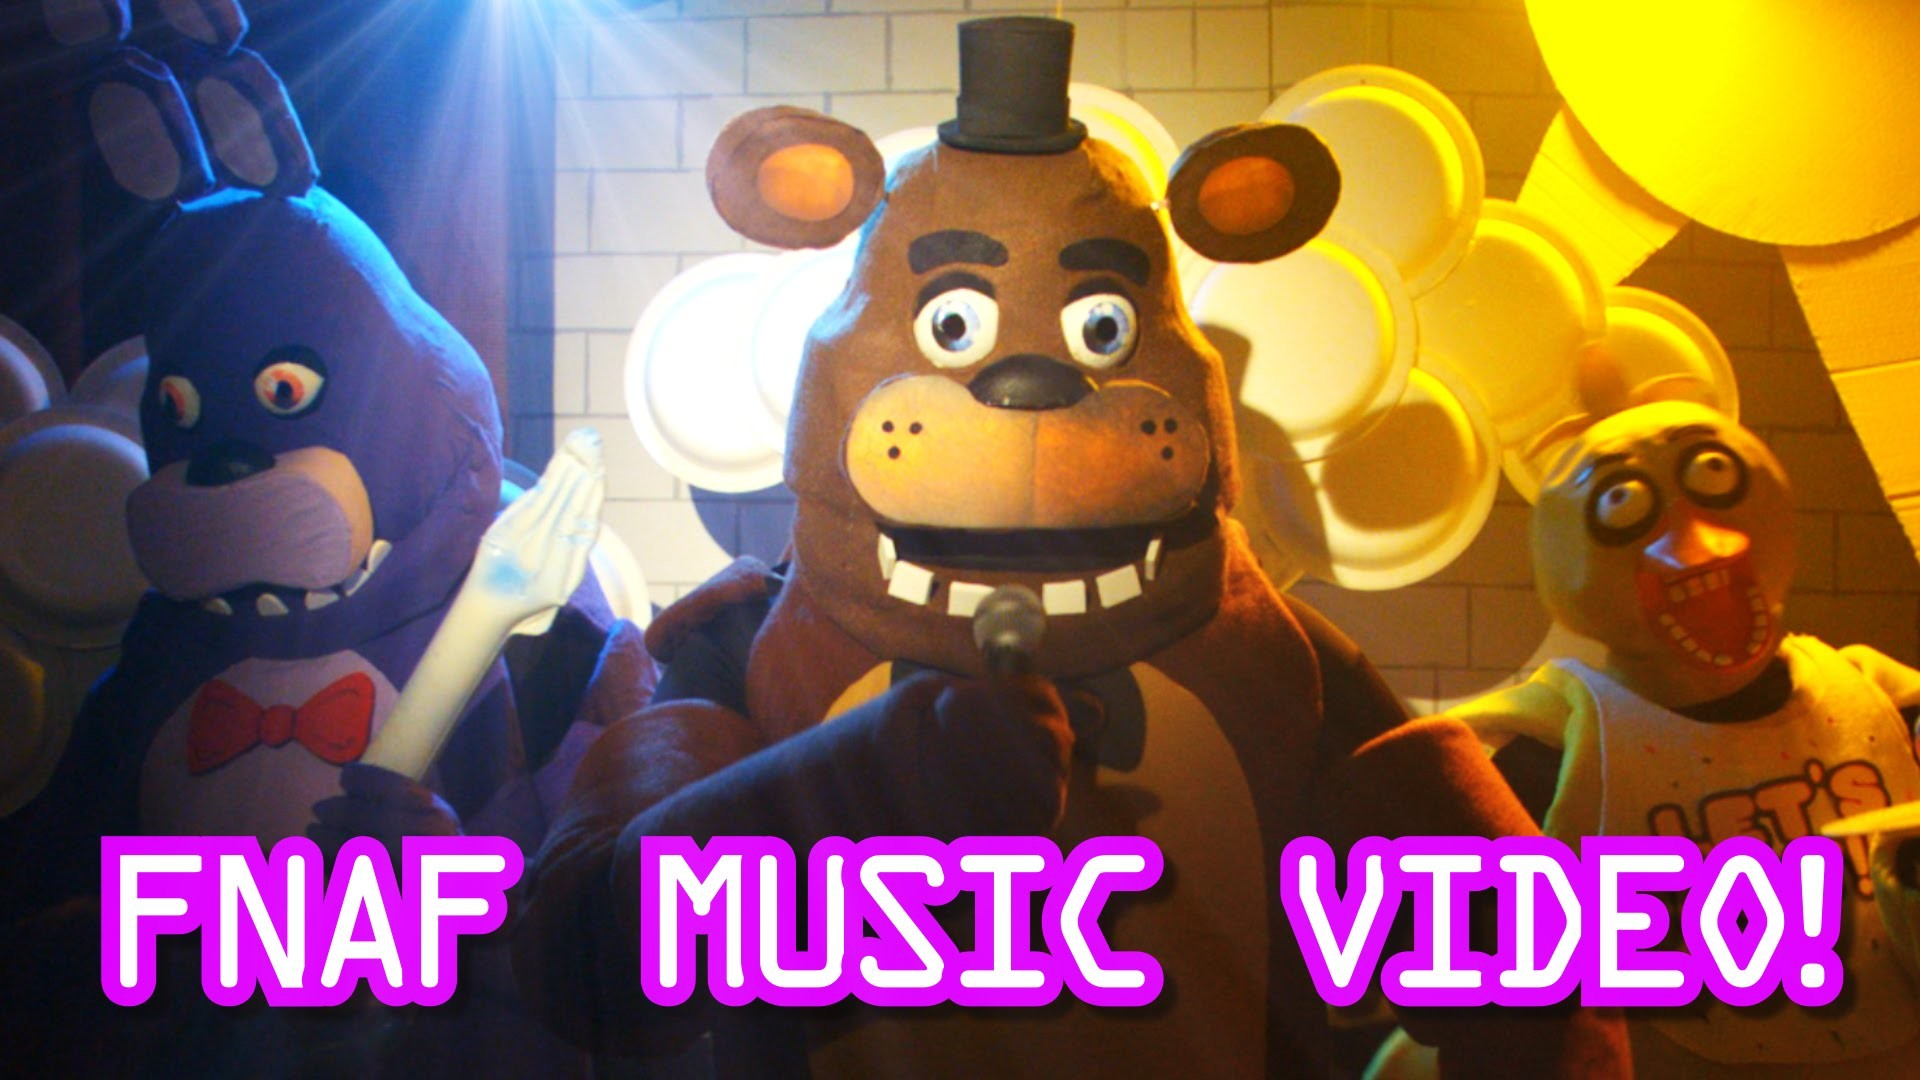 Five Nights At Freddys Live Action Music Video – FNAF Song for kids –  YouTube